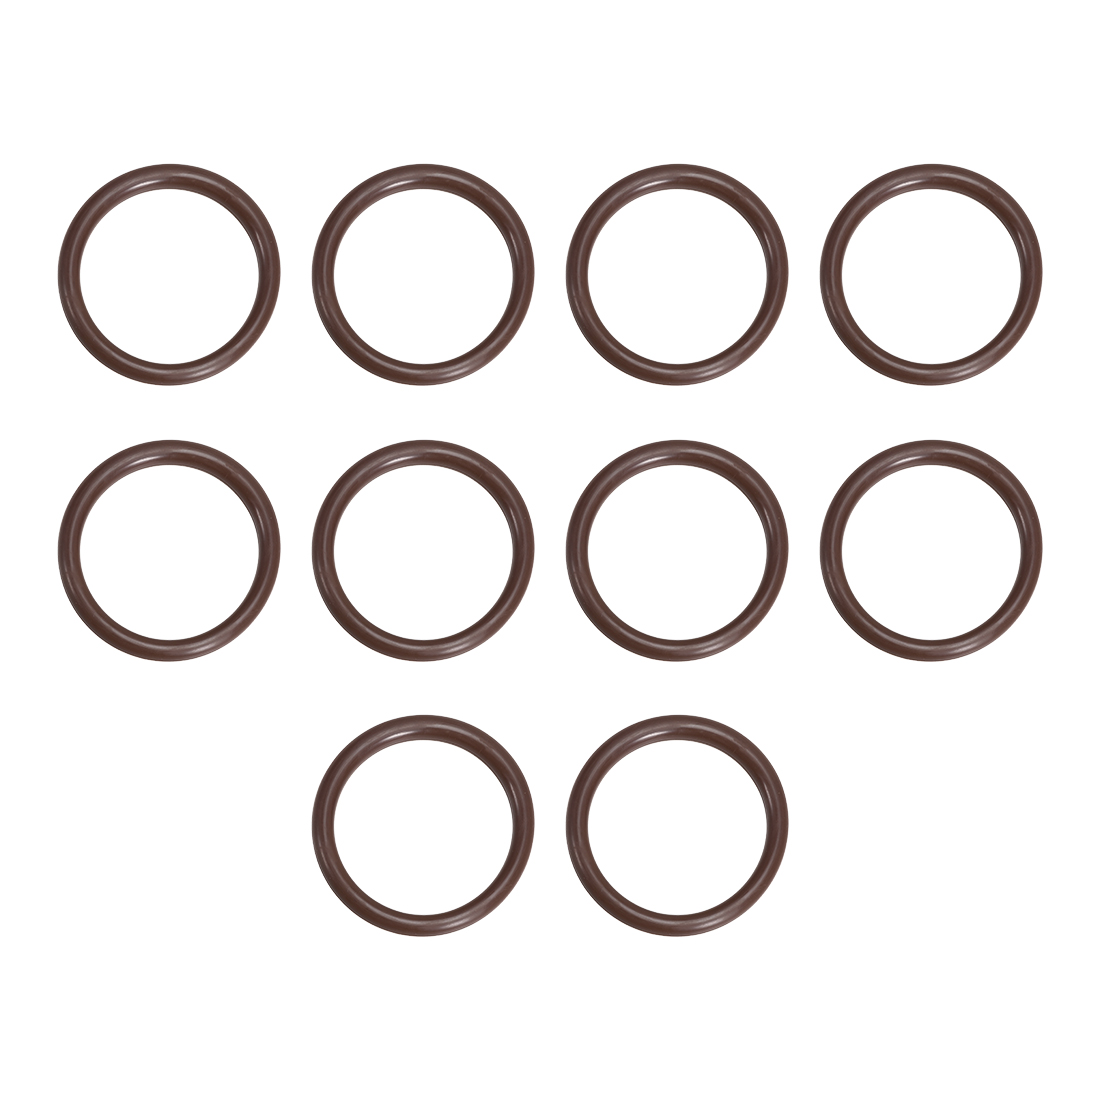 10 Pcs Fluororubber Gasket Sanitary Clamp Washer 63mm x 53mm O-Ring